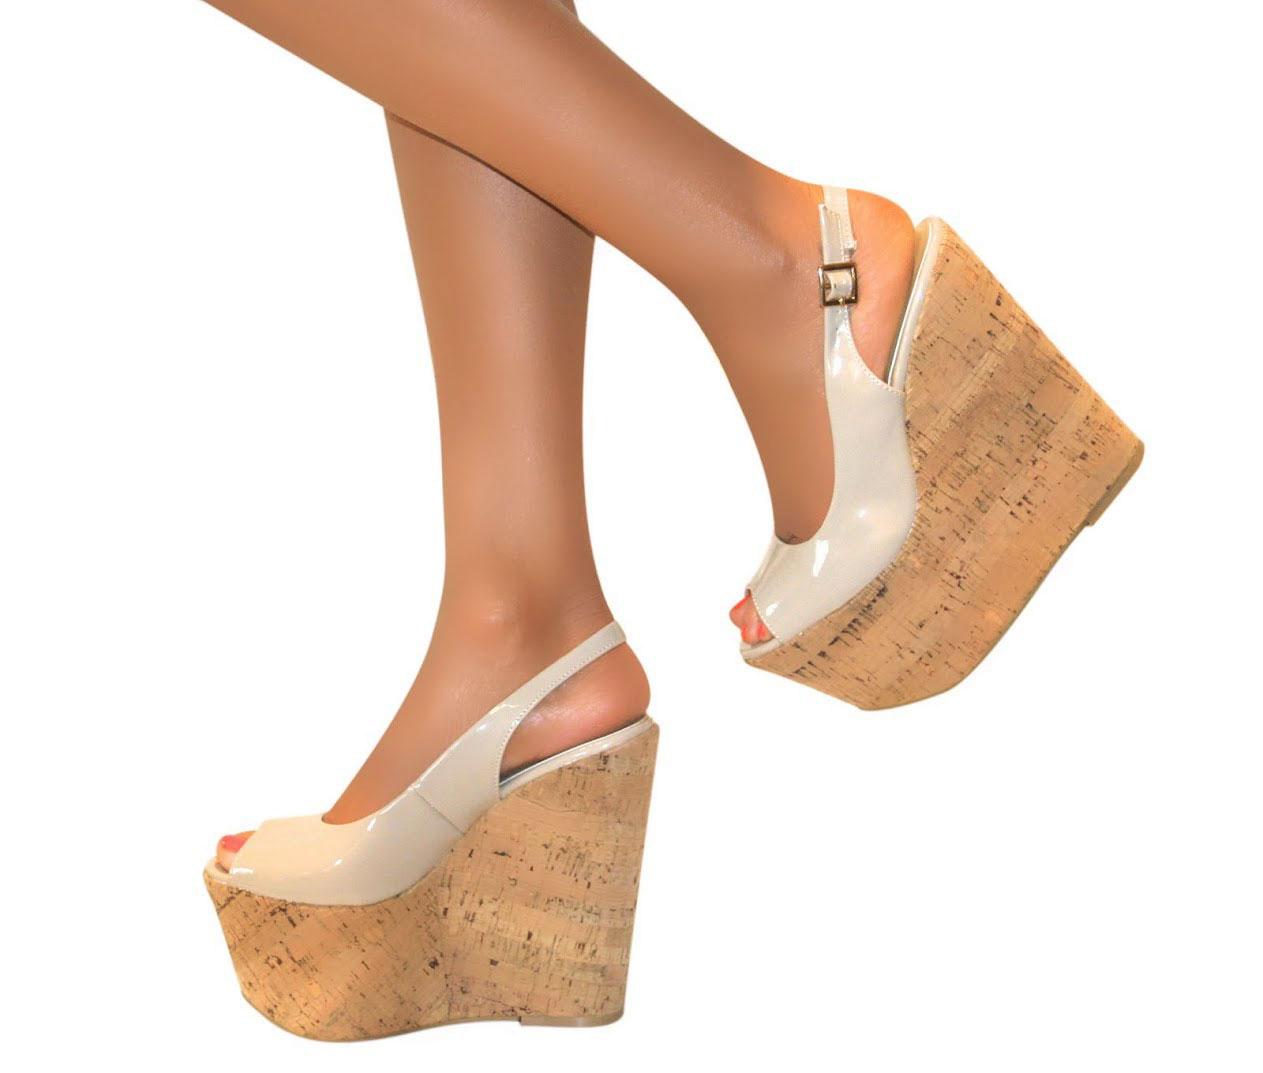 LADIES-SLINGBACK-PLATFORM-PATENT-CORK-WEDGE-HIGH-HEEL-